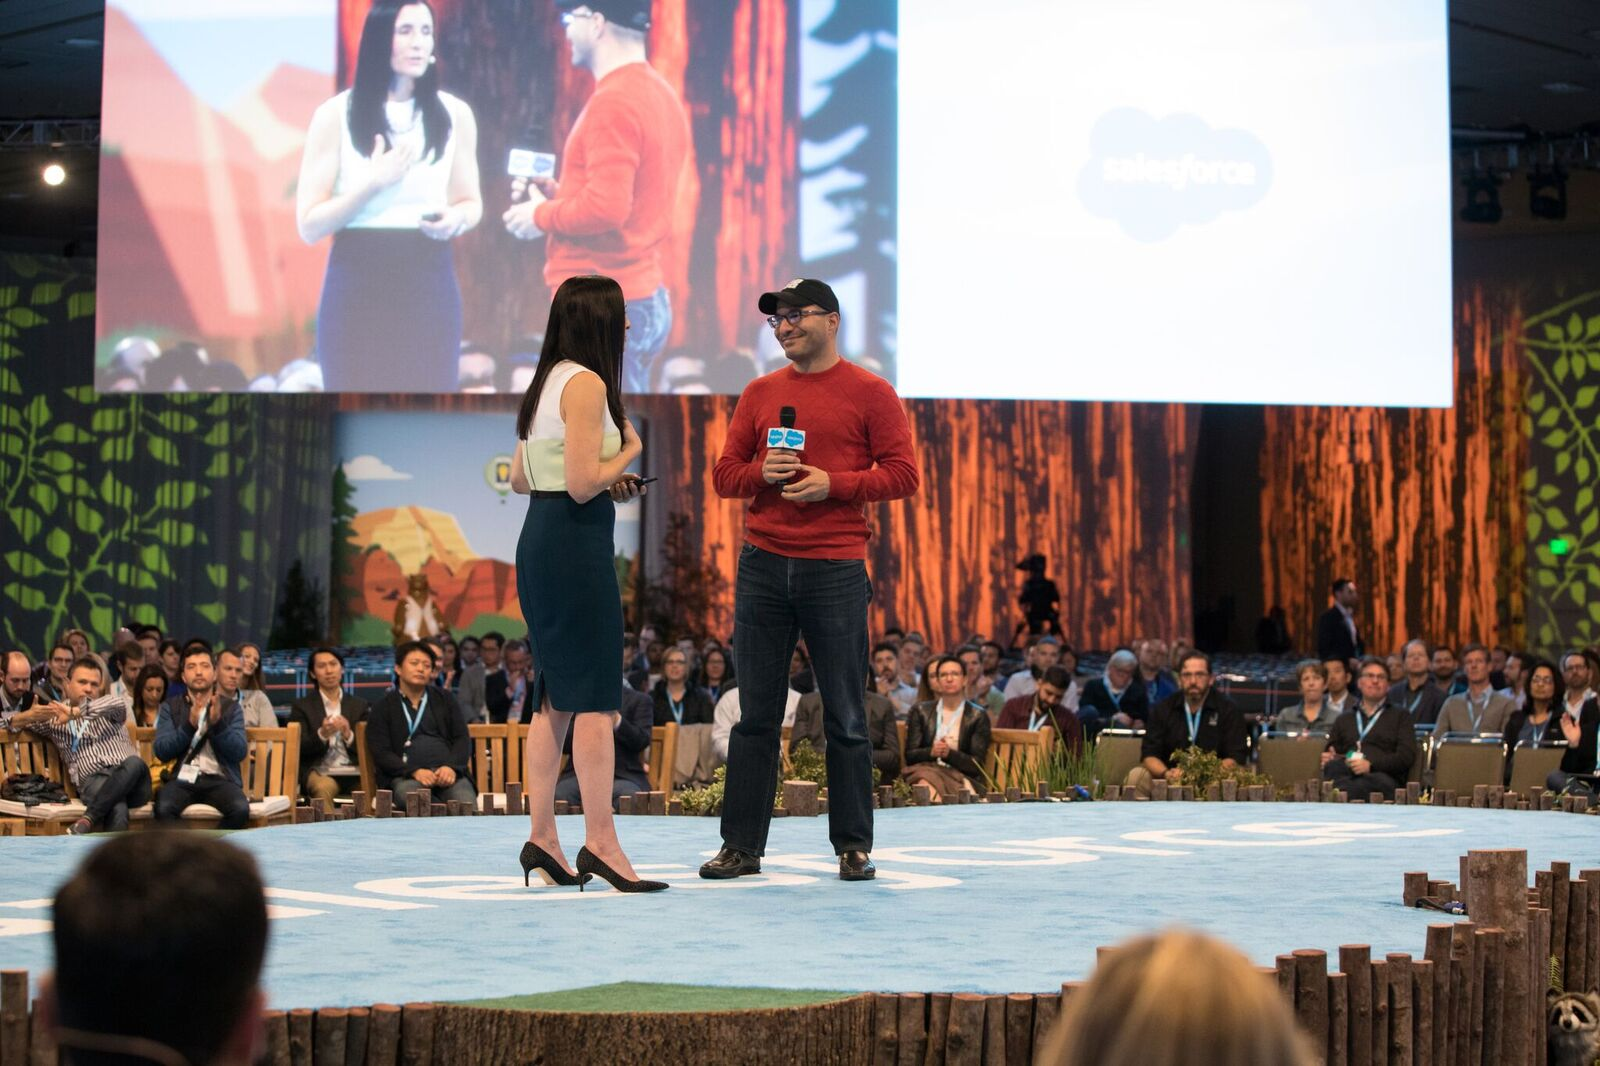 14 Pieces of Advice for SMBs from Dreamforce